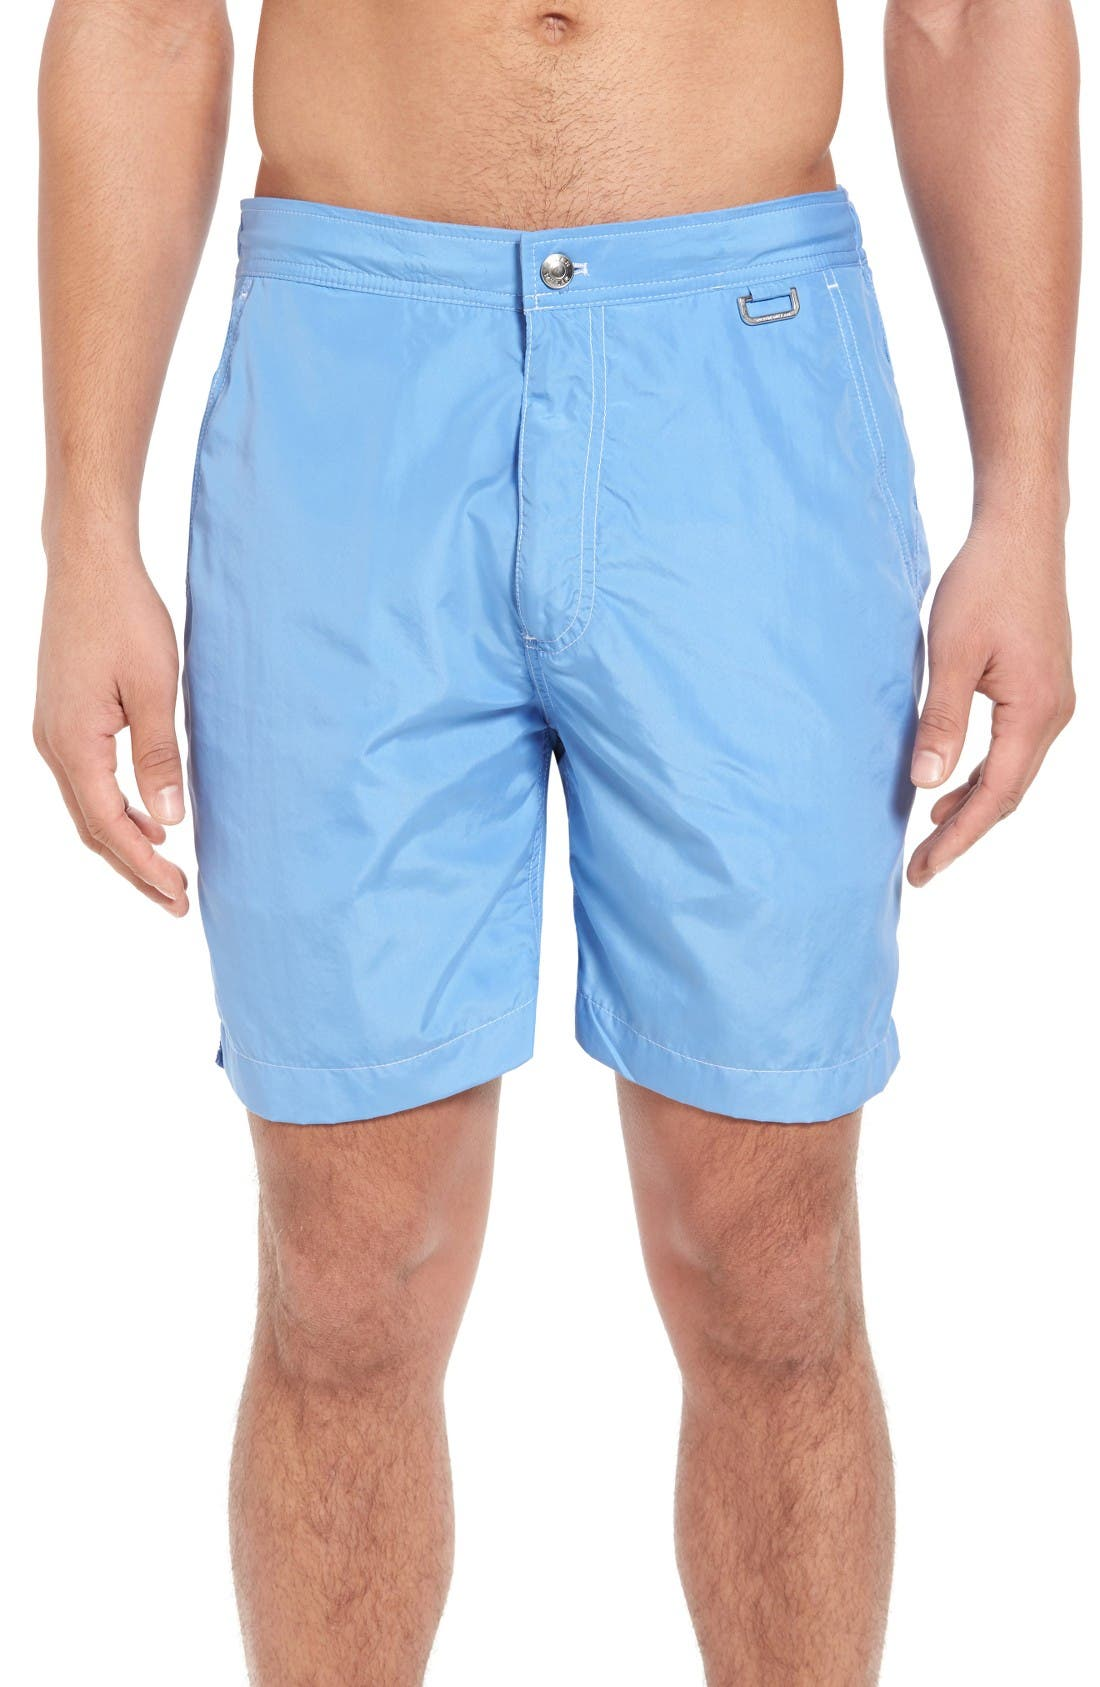 Peter Millar Excursionist Swim Trunks